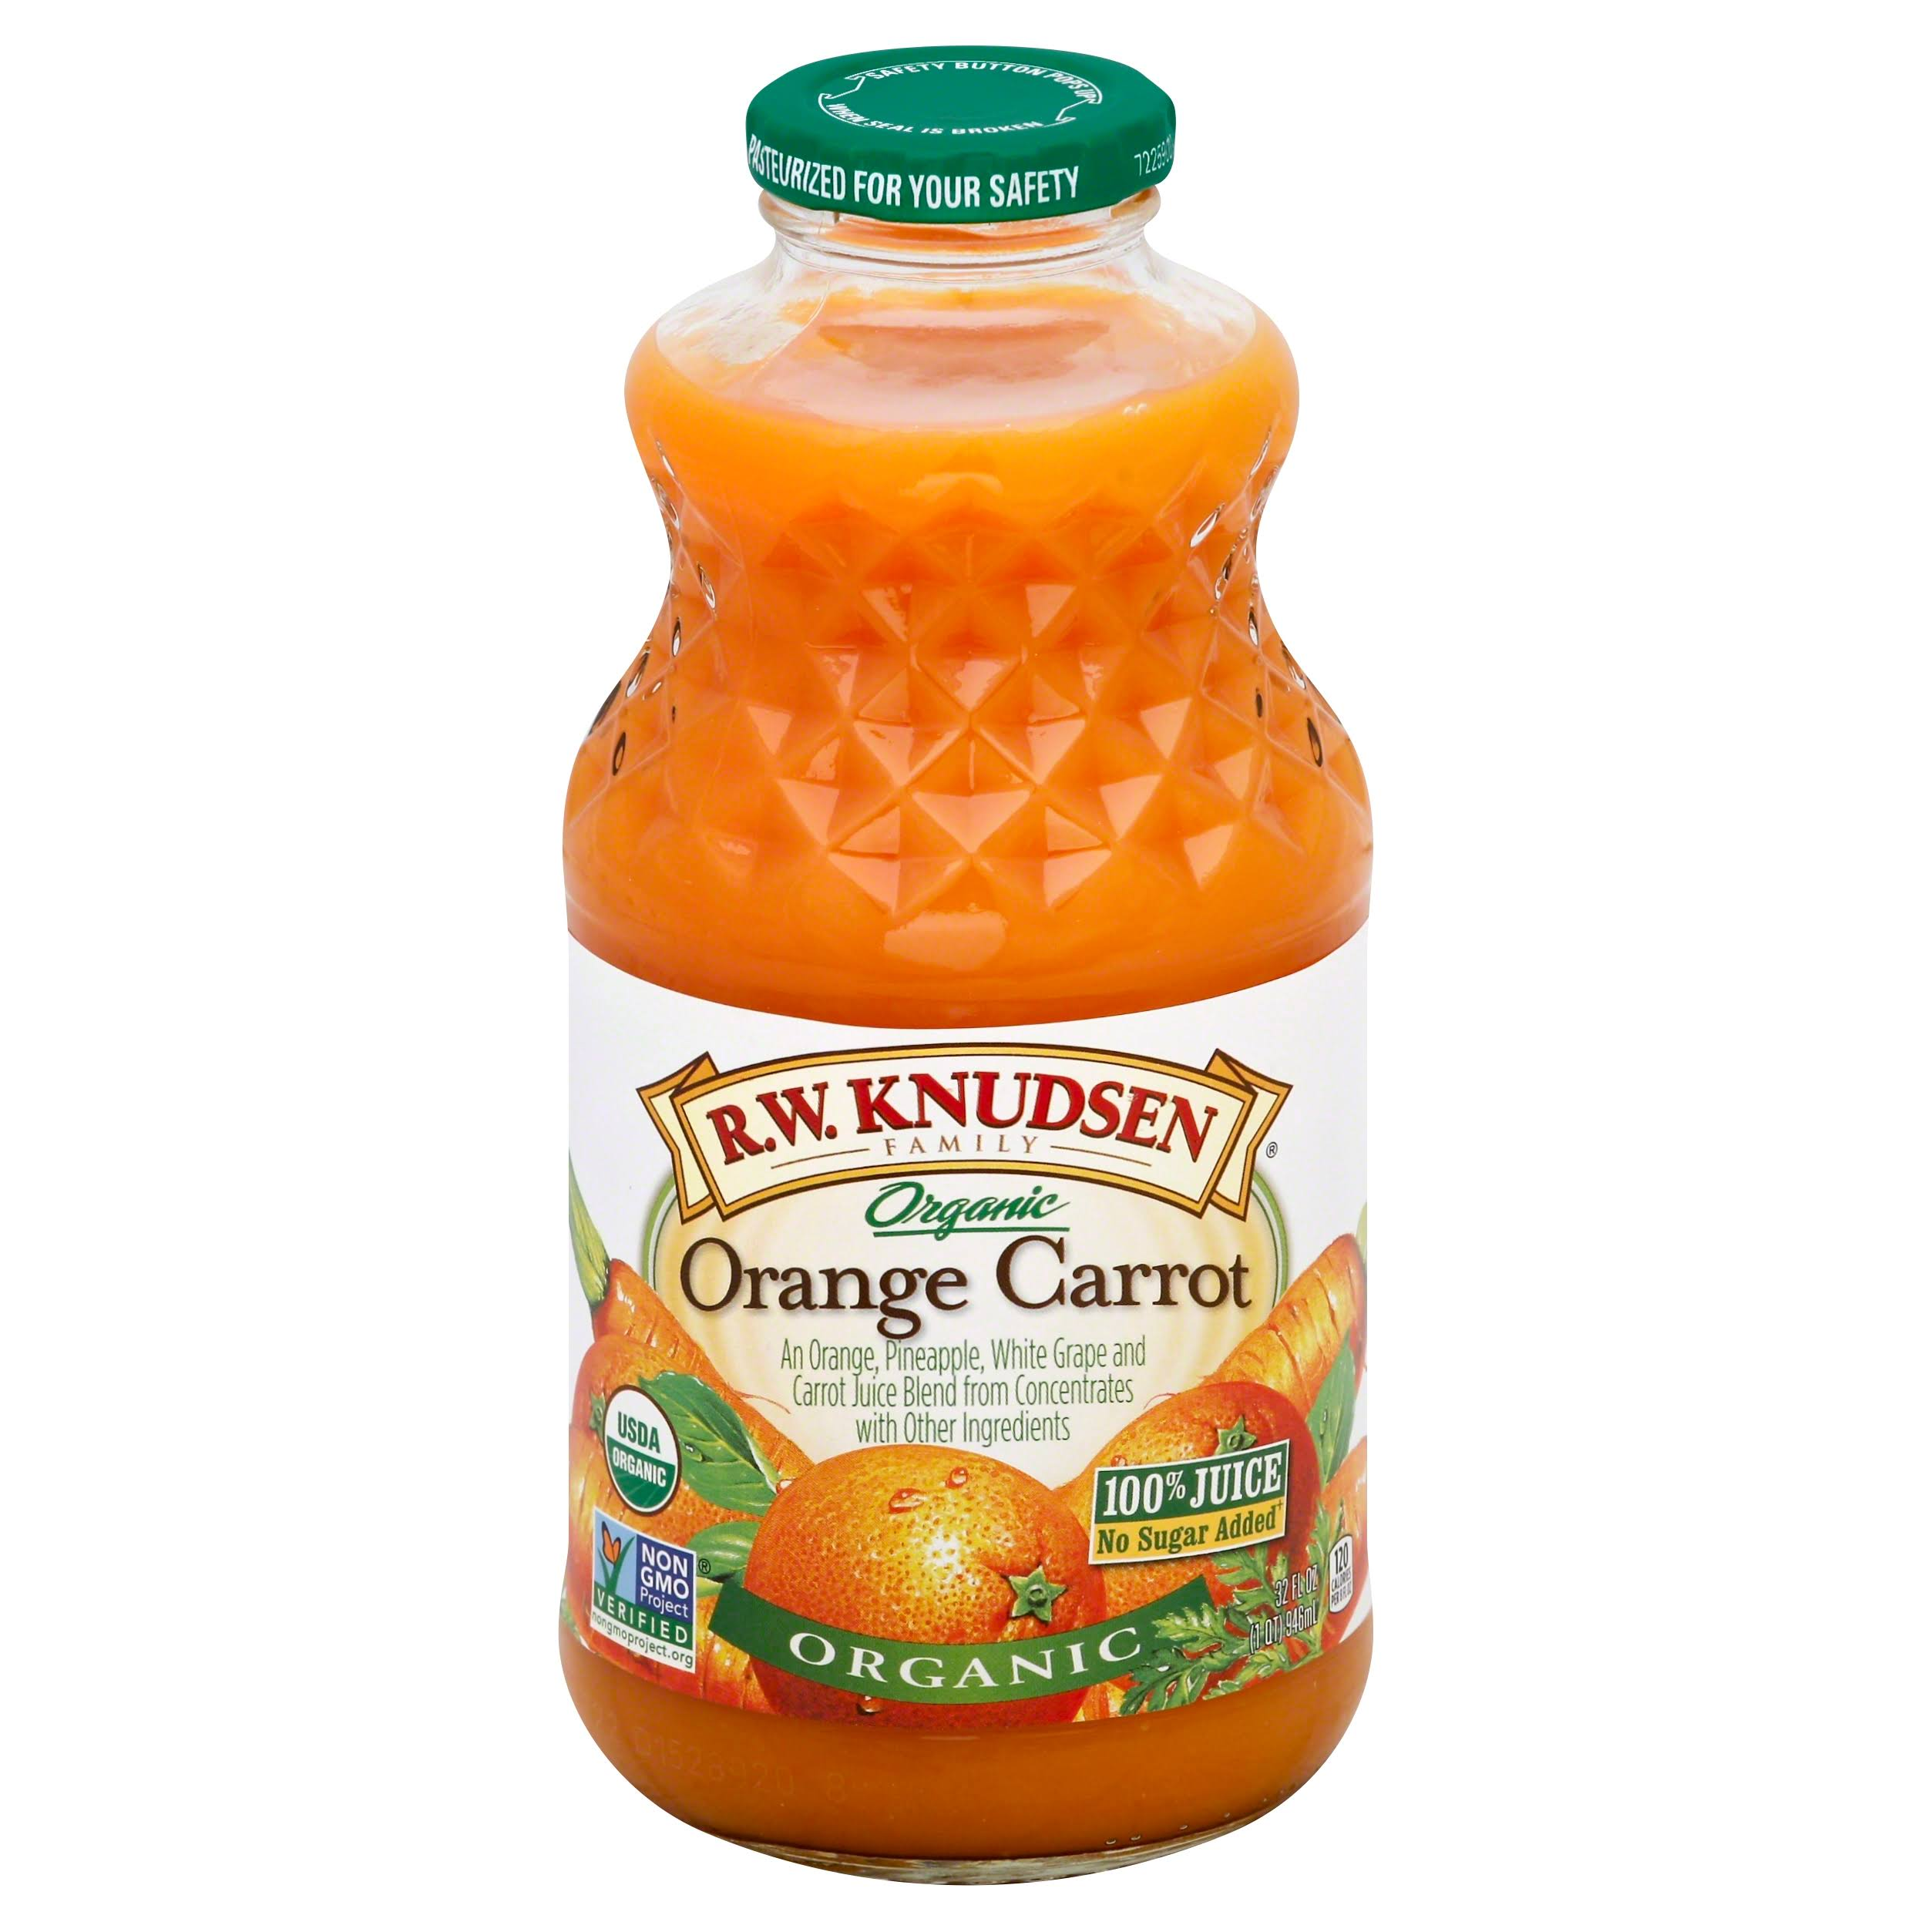 R.W. Knudsen Family Organic Orange Carrot Juice - 32oz